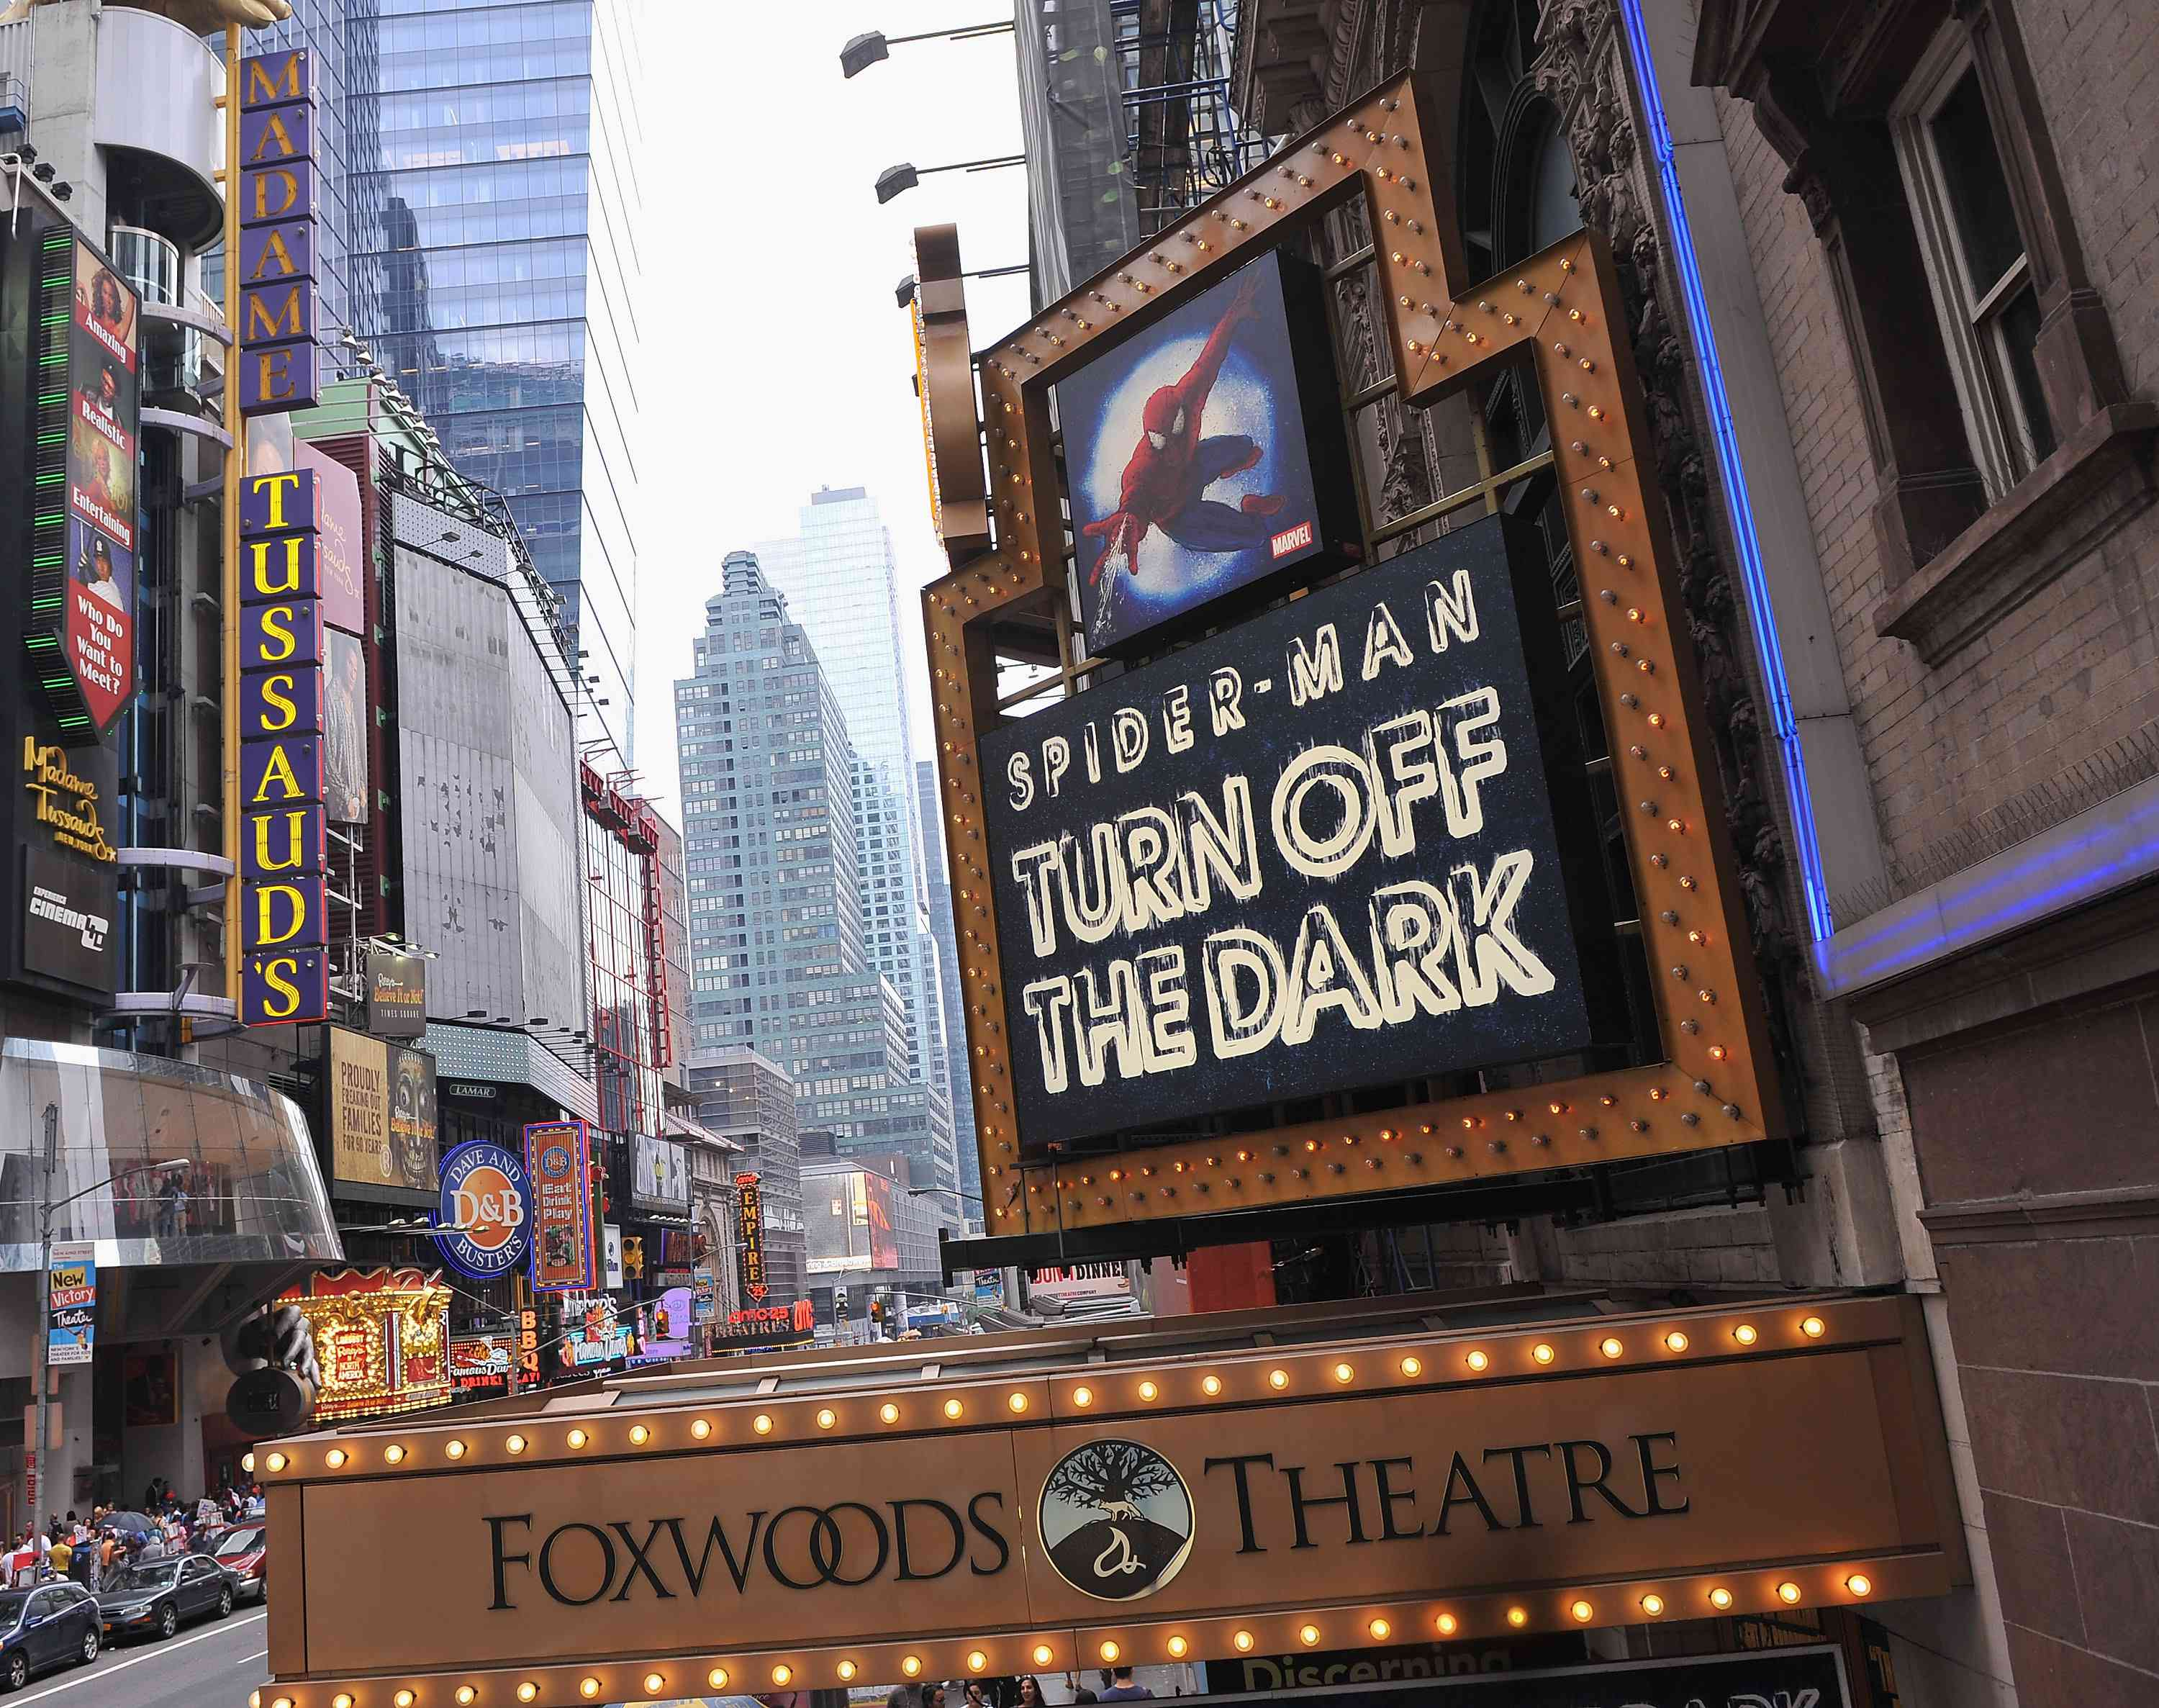 The marquee for Spider-Man: Turn Off The Dark